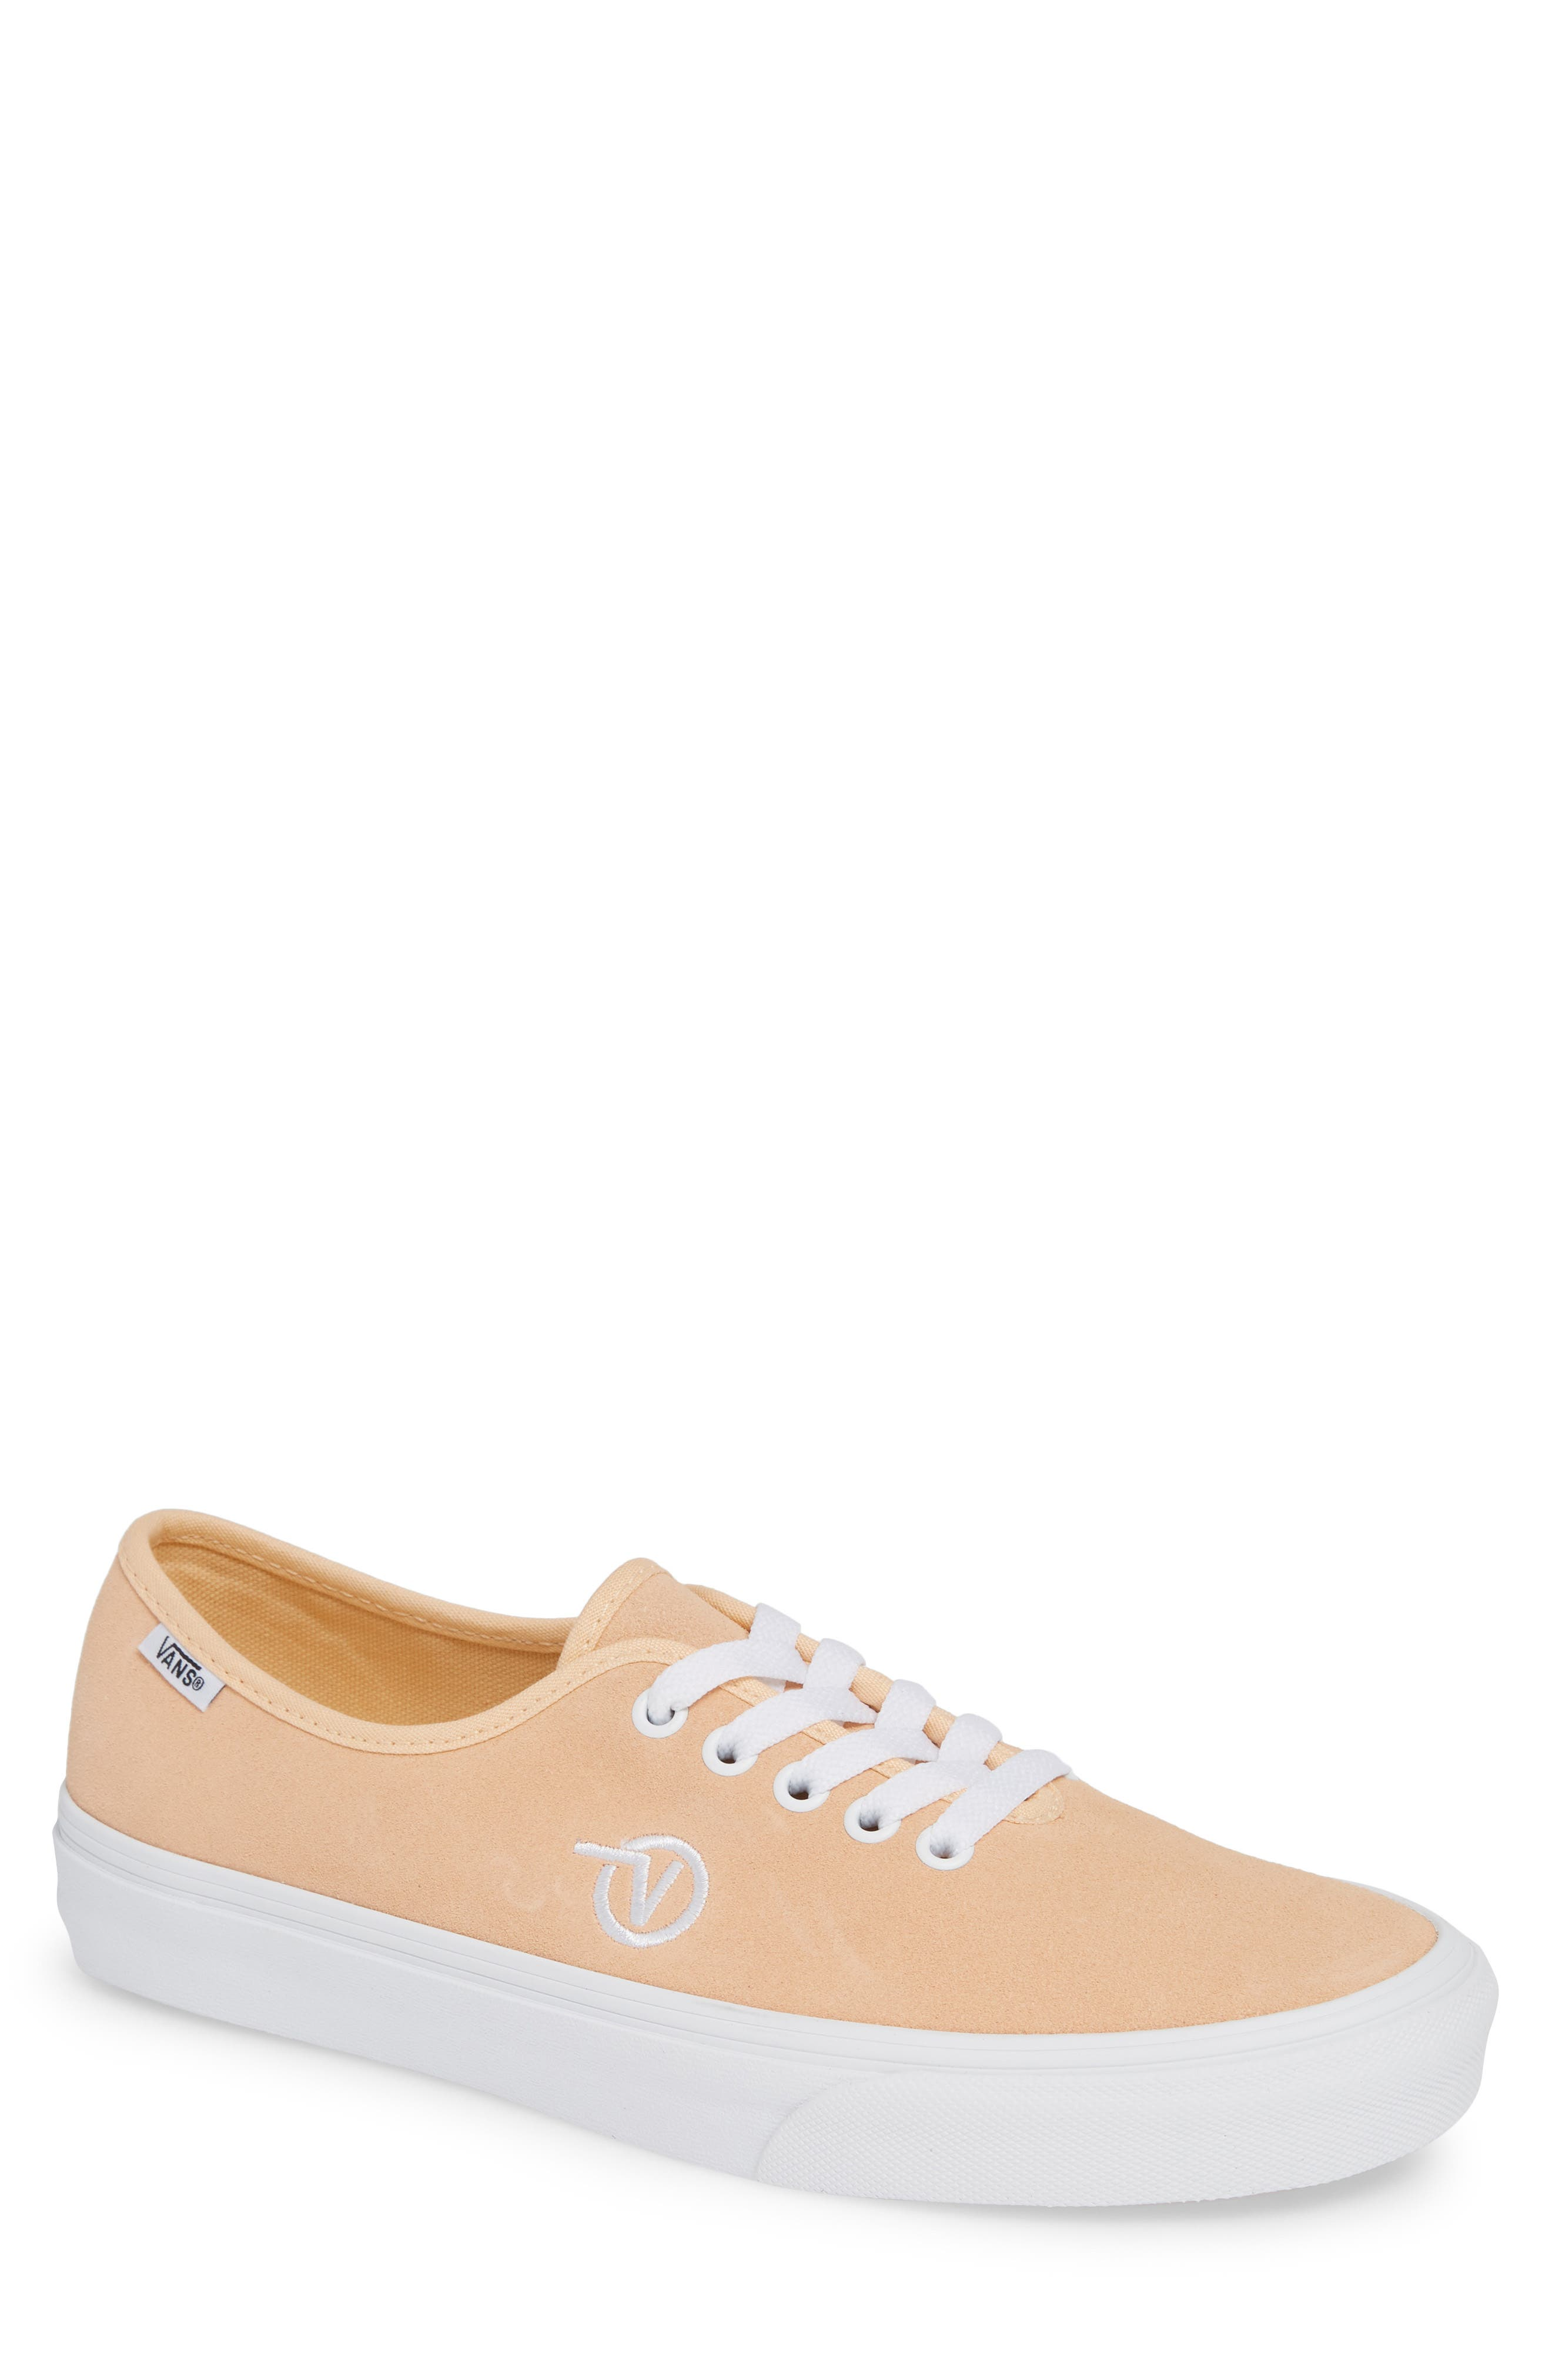 Authentic One-Piece Sneaker,                         Main,                         color, BLEACHED APRICOT/ SUEDE